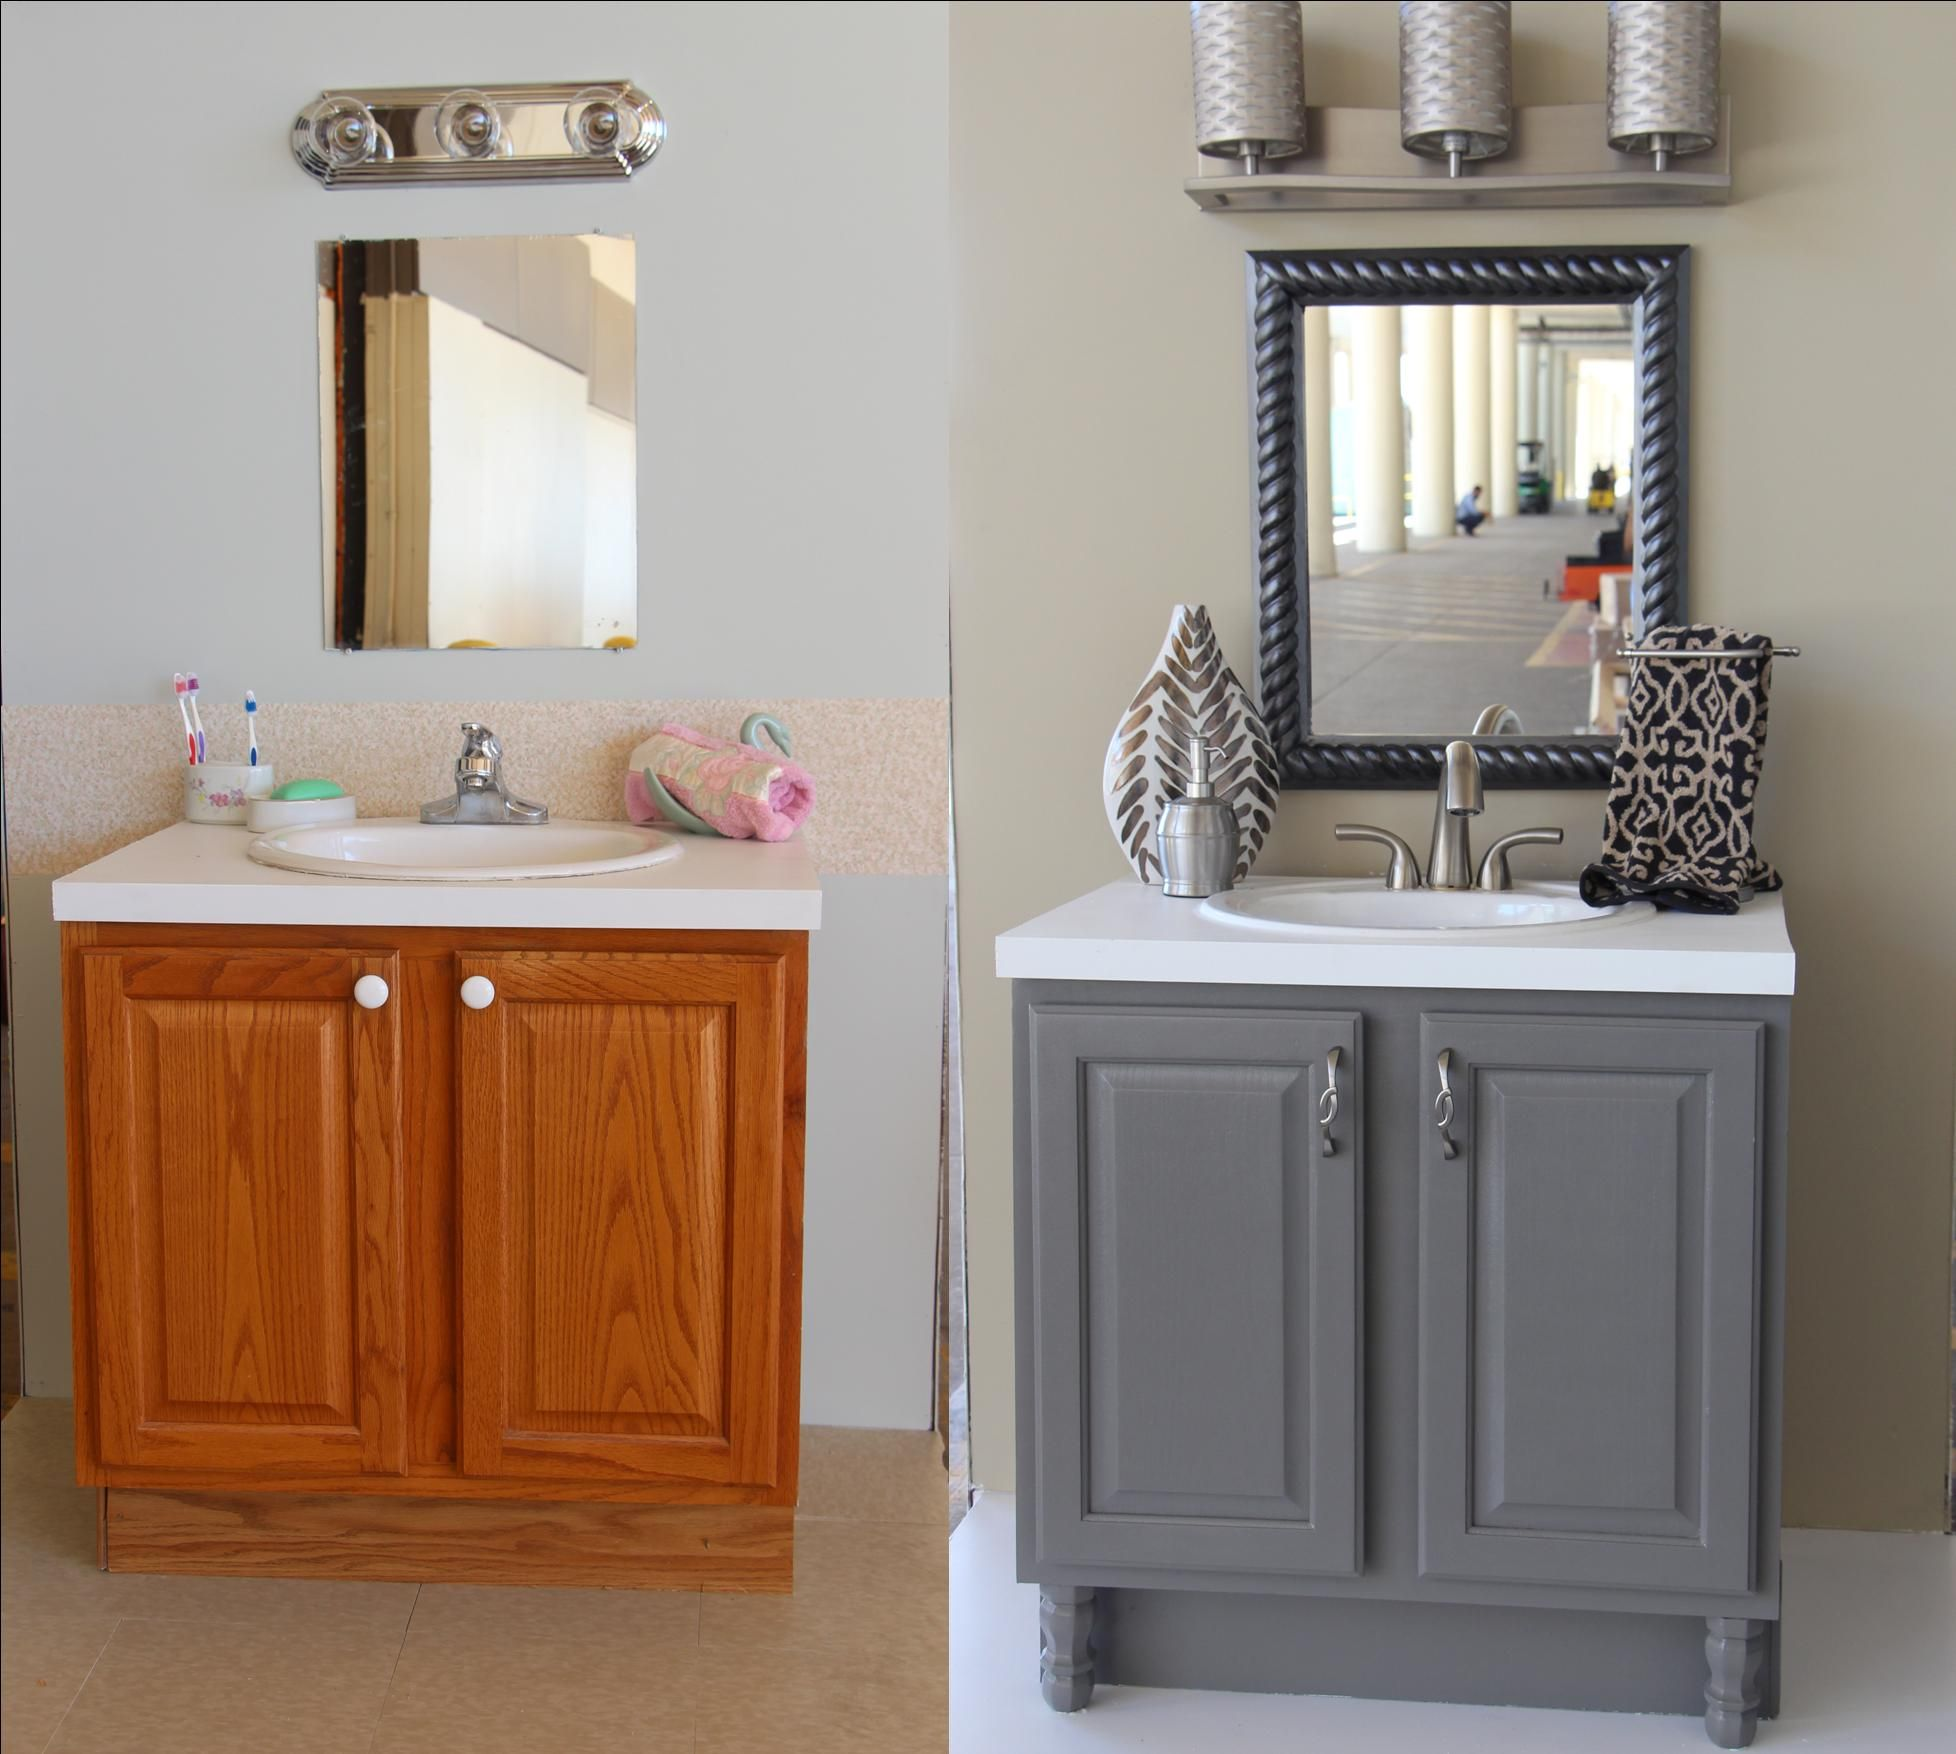 Small Bathroom Cabinets Ideas: Bathroom Updates You Can Do This Weekend!